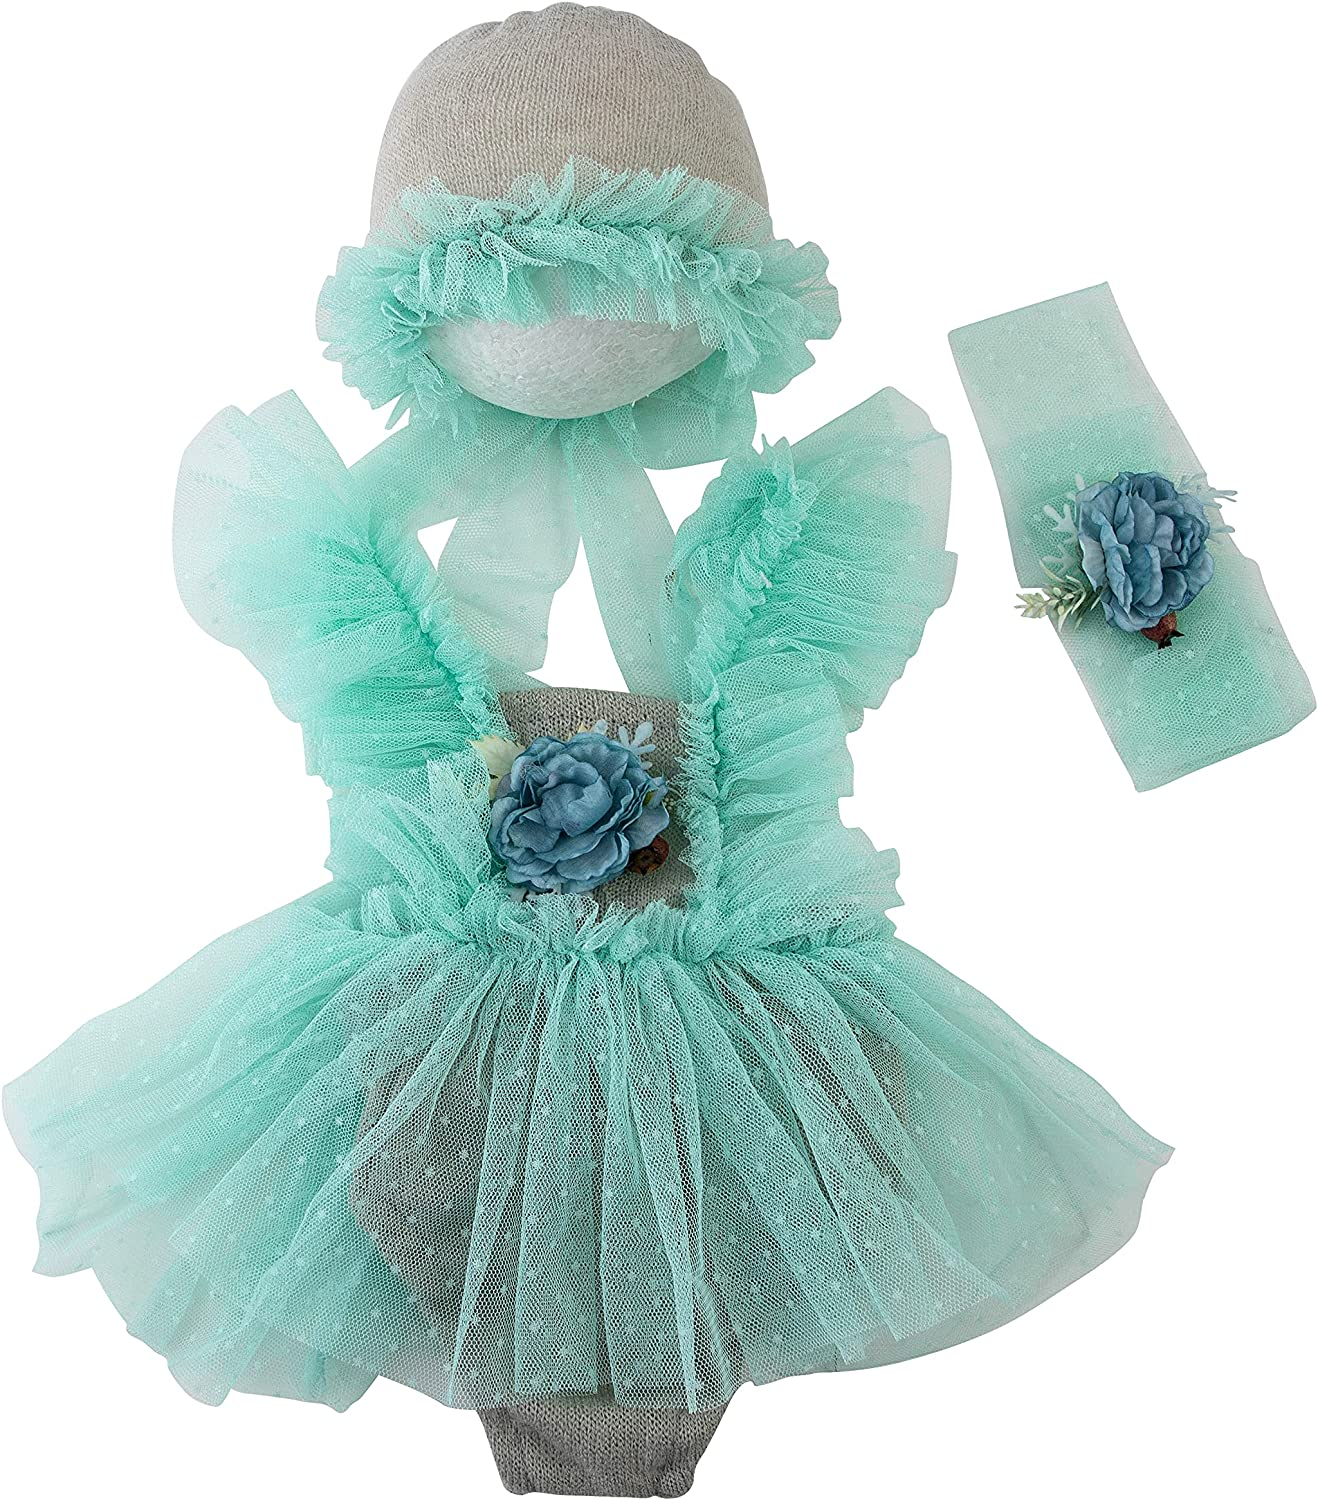 Newborn Photography Prop Outfits Portland Mall Girl Outfit Complete Free Shipping Set Baby Lace